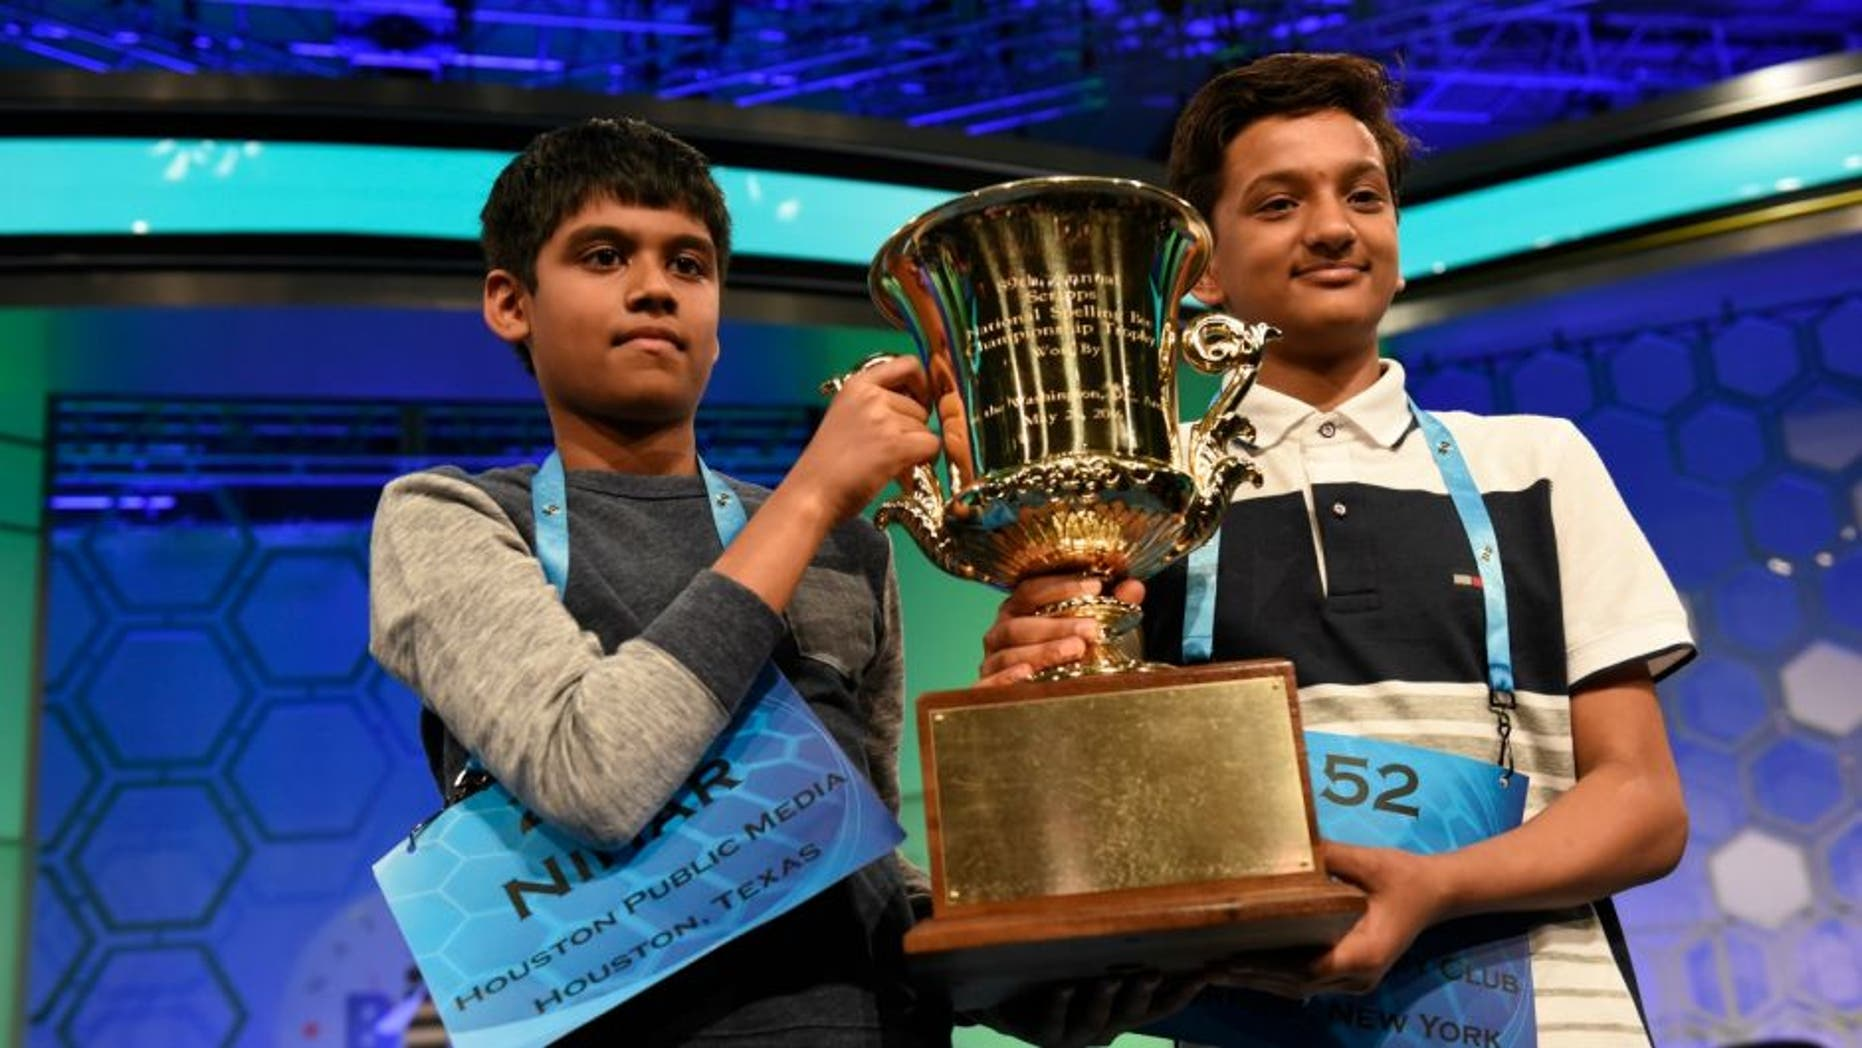 May 26, 2016; National Harbor, MD, USA; Nihar Janga, 11, of Austin, Texas (L) and Jairam Hathwar, 13, of Painted Post, N.Y. (R) celebrate as co-champions during the 2016 Scripps National Spelling Bee at the Gaylord National Resort and Convention Center.Mandatory Credit: Jack Gruber-USA TODAY NETWORK